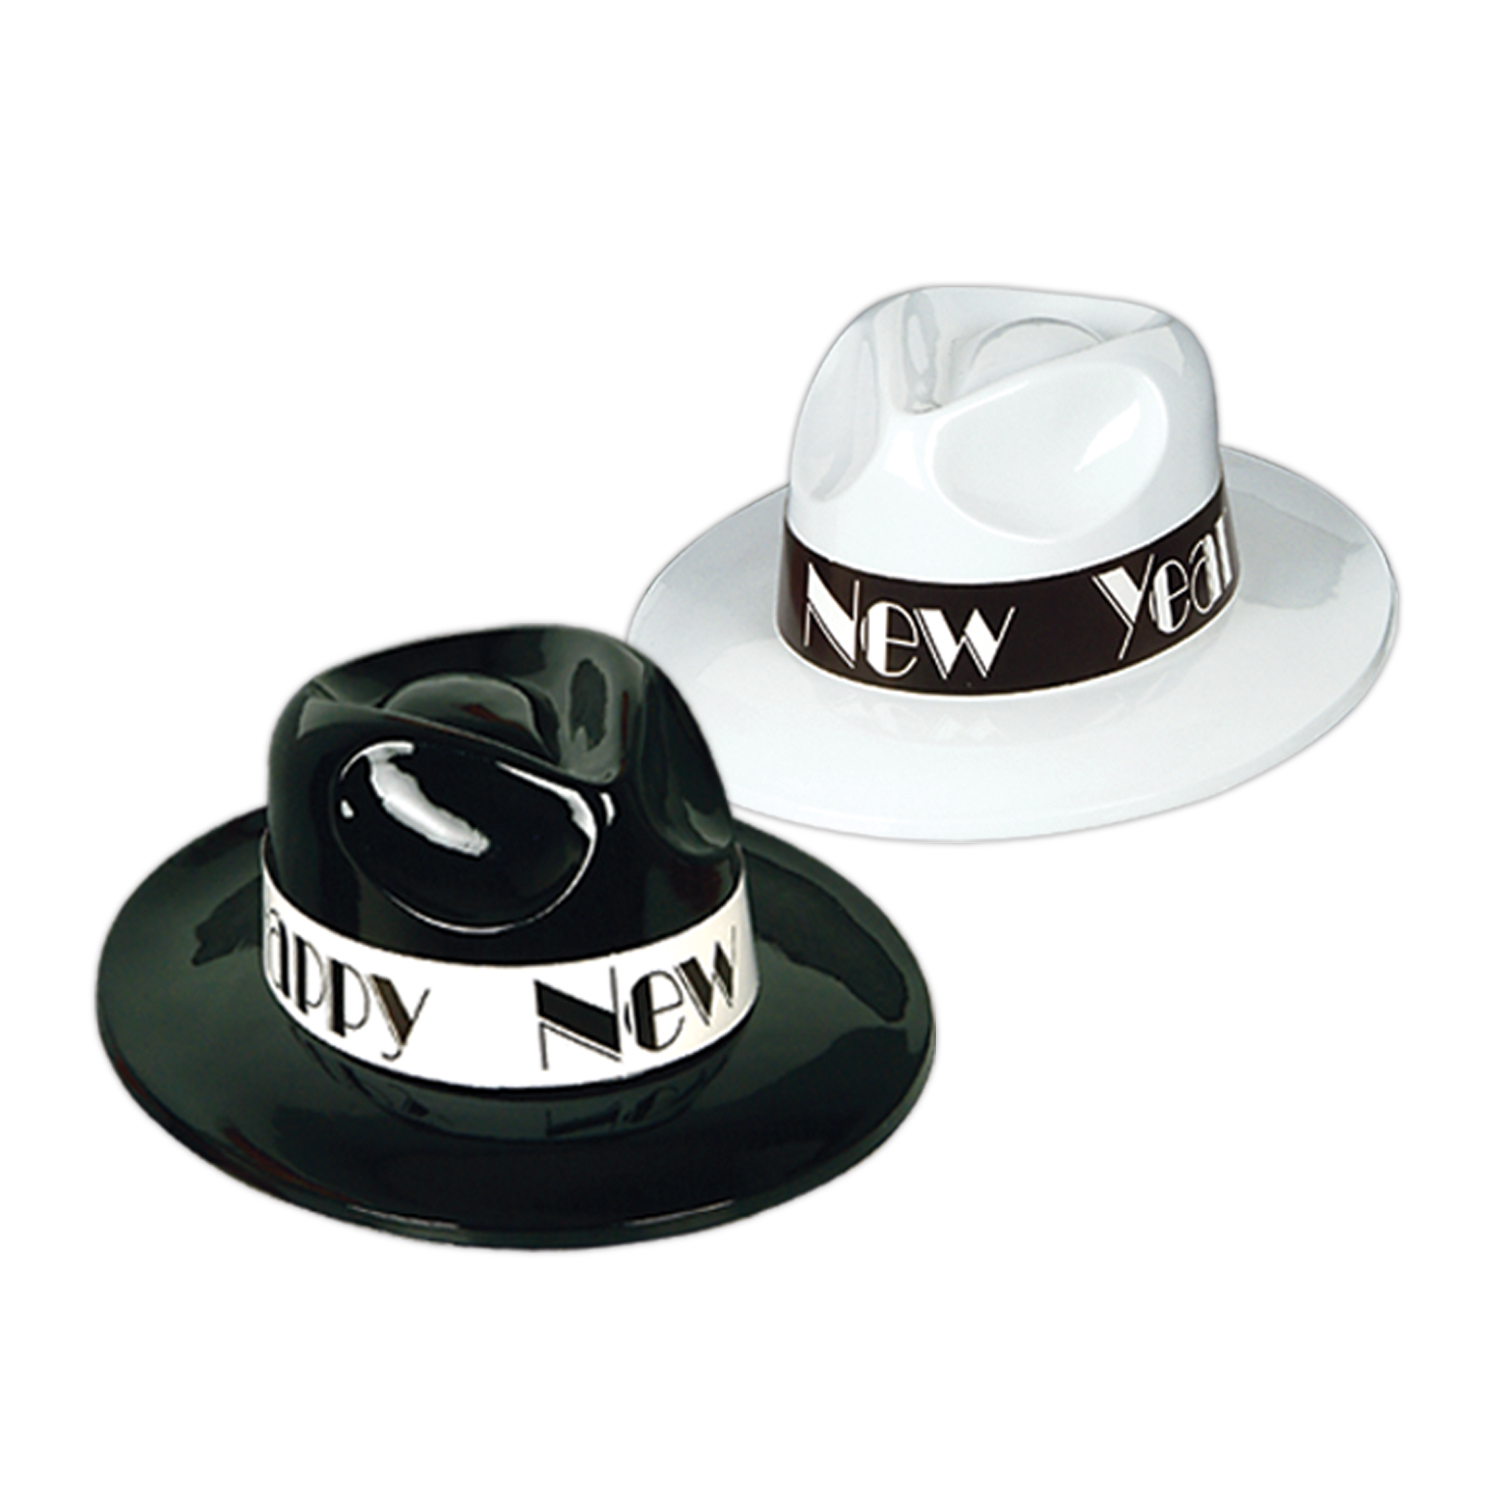 Charleston Fedoras asstd black & white